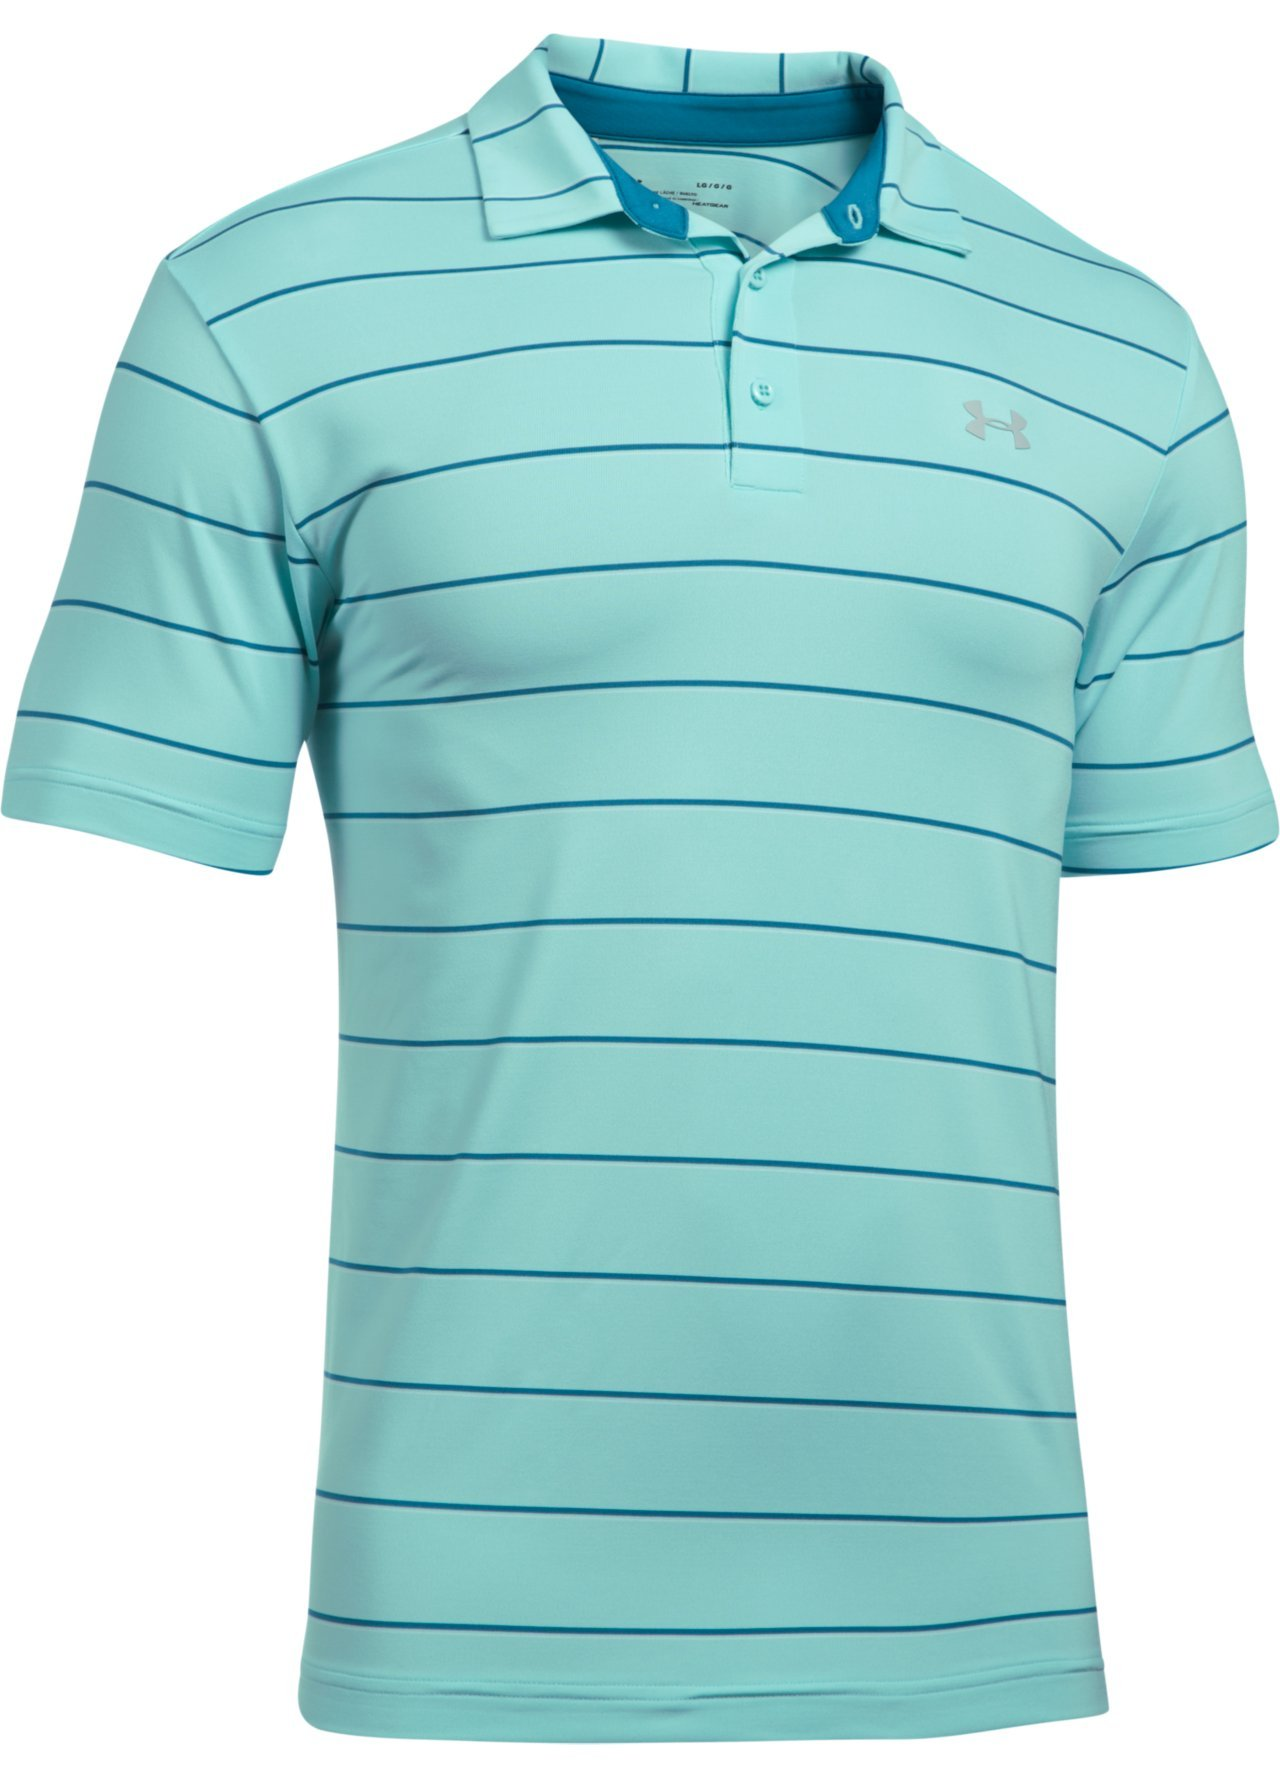 0d2fc93186 Details about Under Armour Playoff Golf Polo Shirt